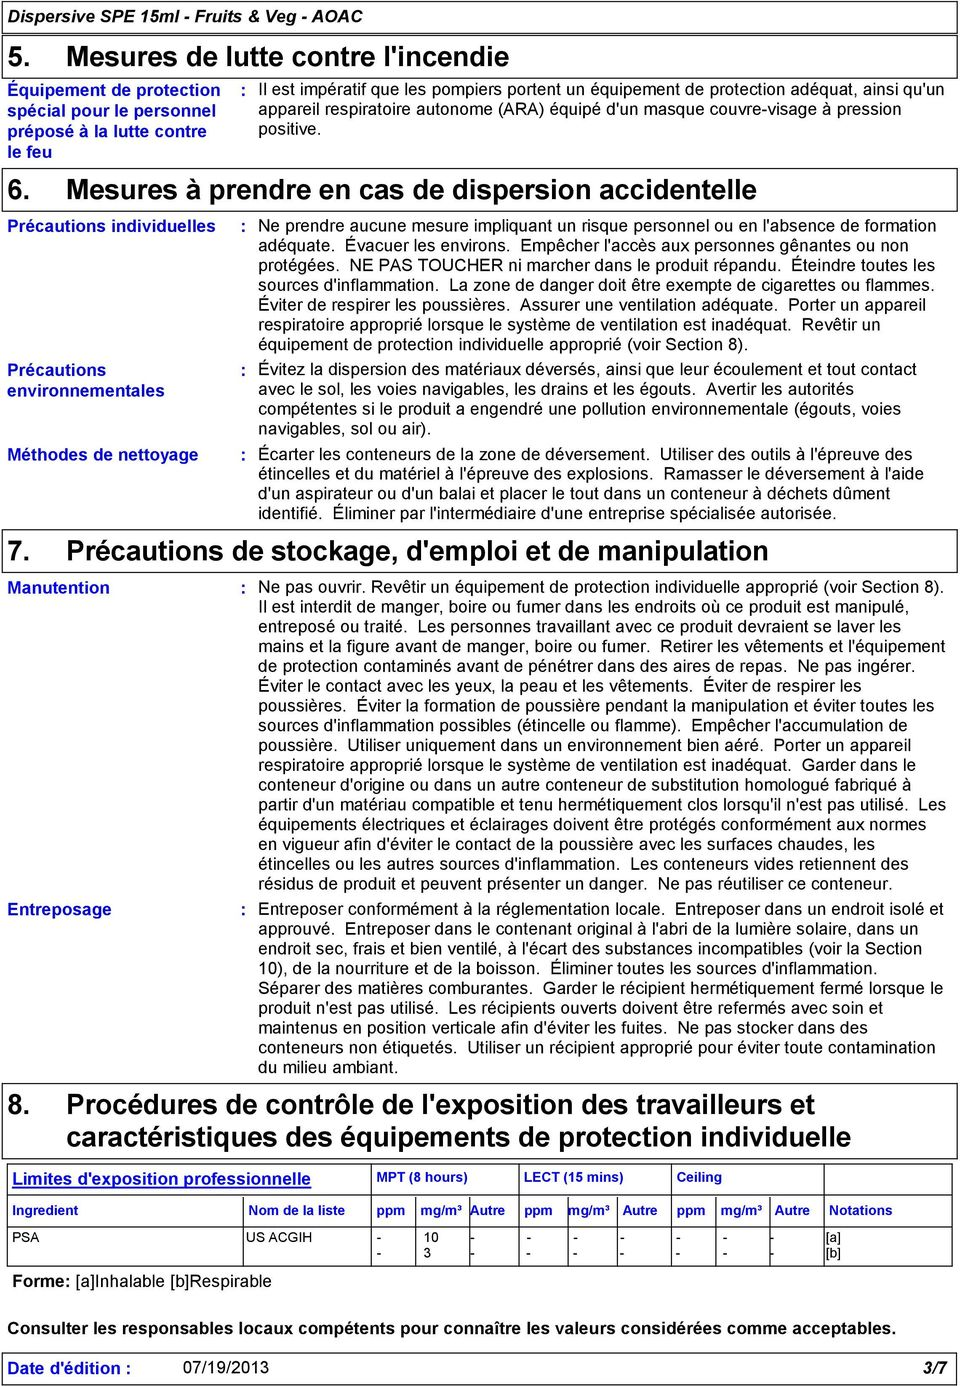 pression positive. Mesures à prendre en cas de dispersion accidentelle Précautions individuelles Méthodes de nettoyage 7. Manutention Entreposage 8.